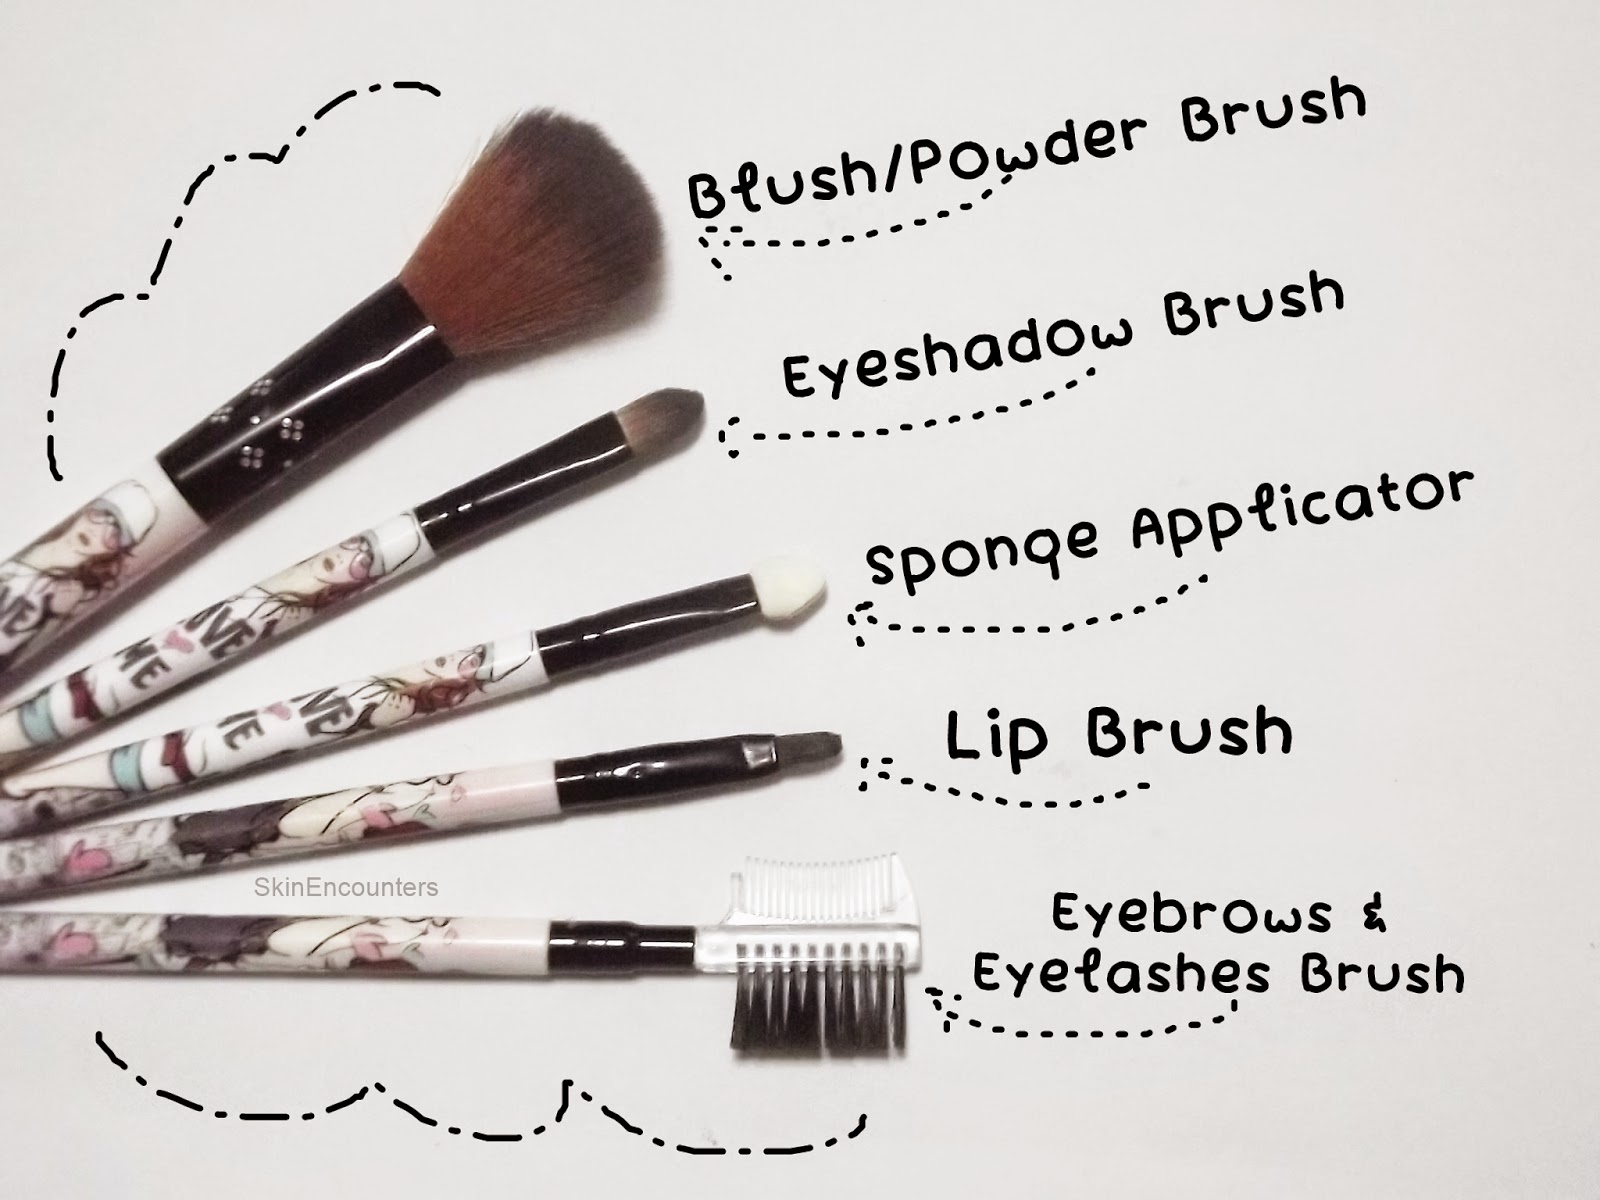 Emaxdesign makeup brushes uses